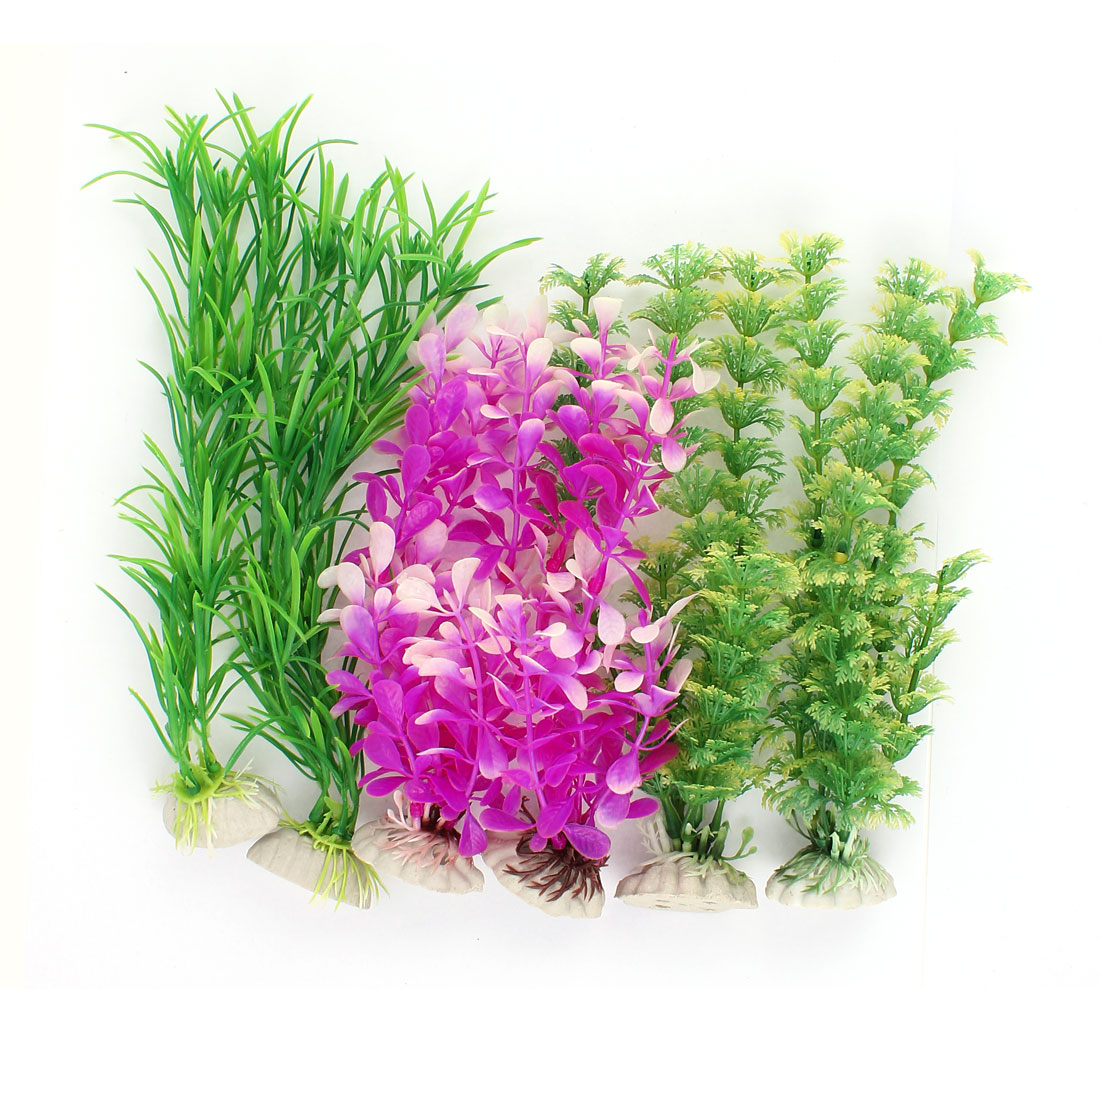 Plastic Underwater Sea Weeds Plant Fish Tank Aquarium Decoration 6pcs